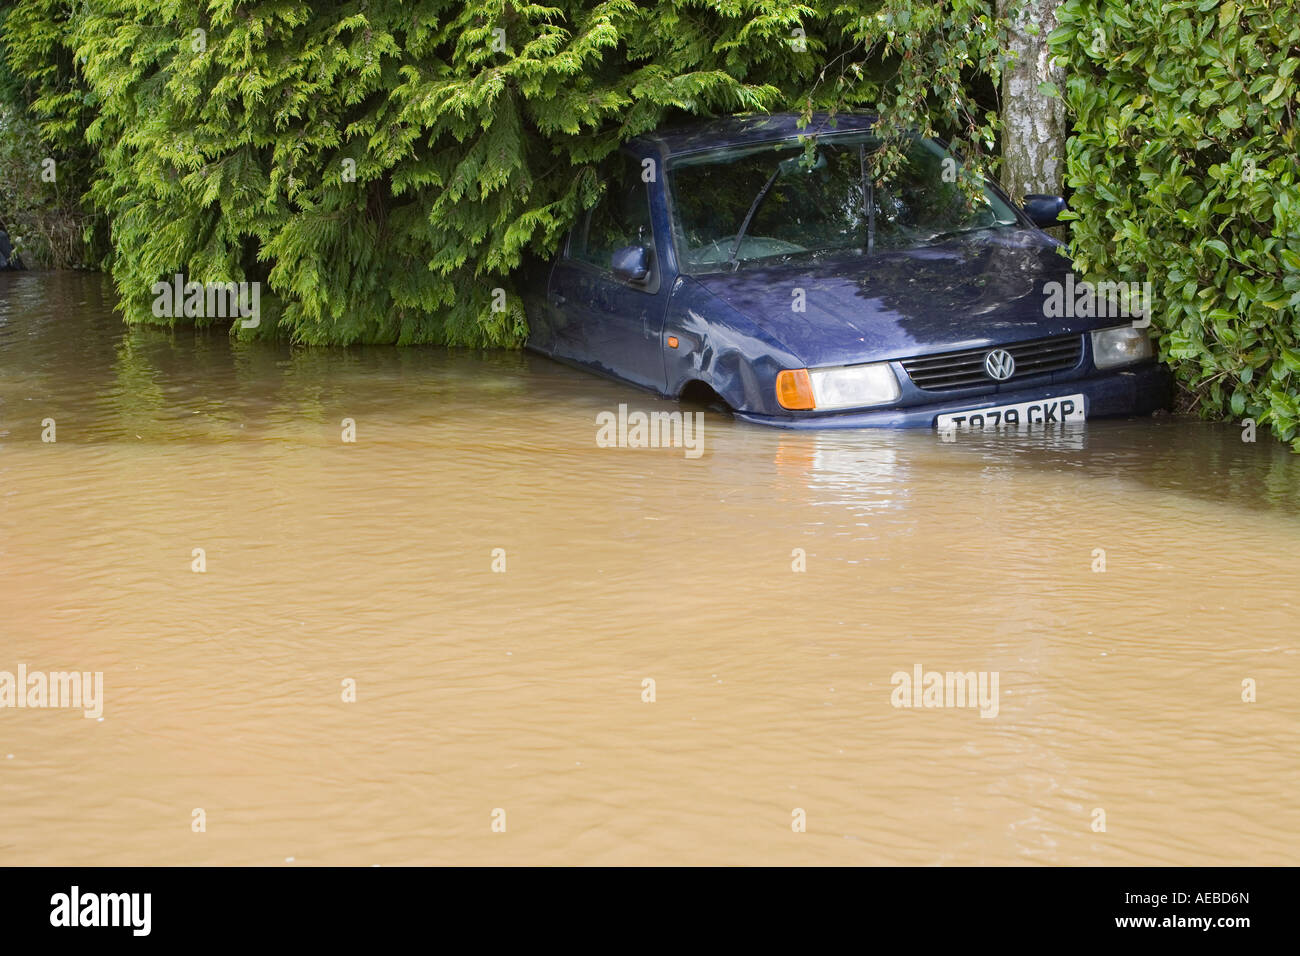 A car washed away in upton upon Severn - Stock Image